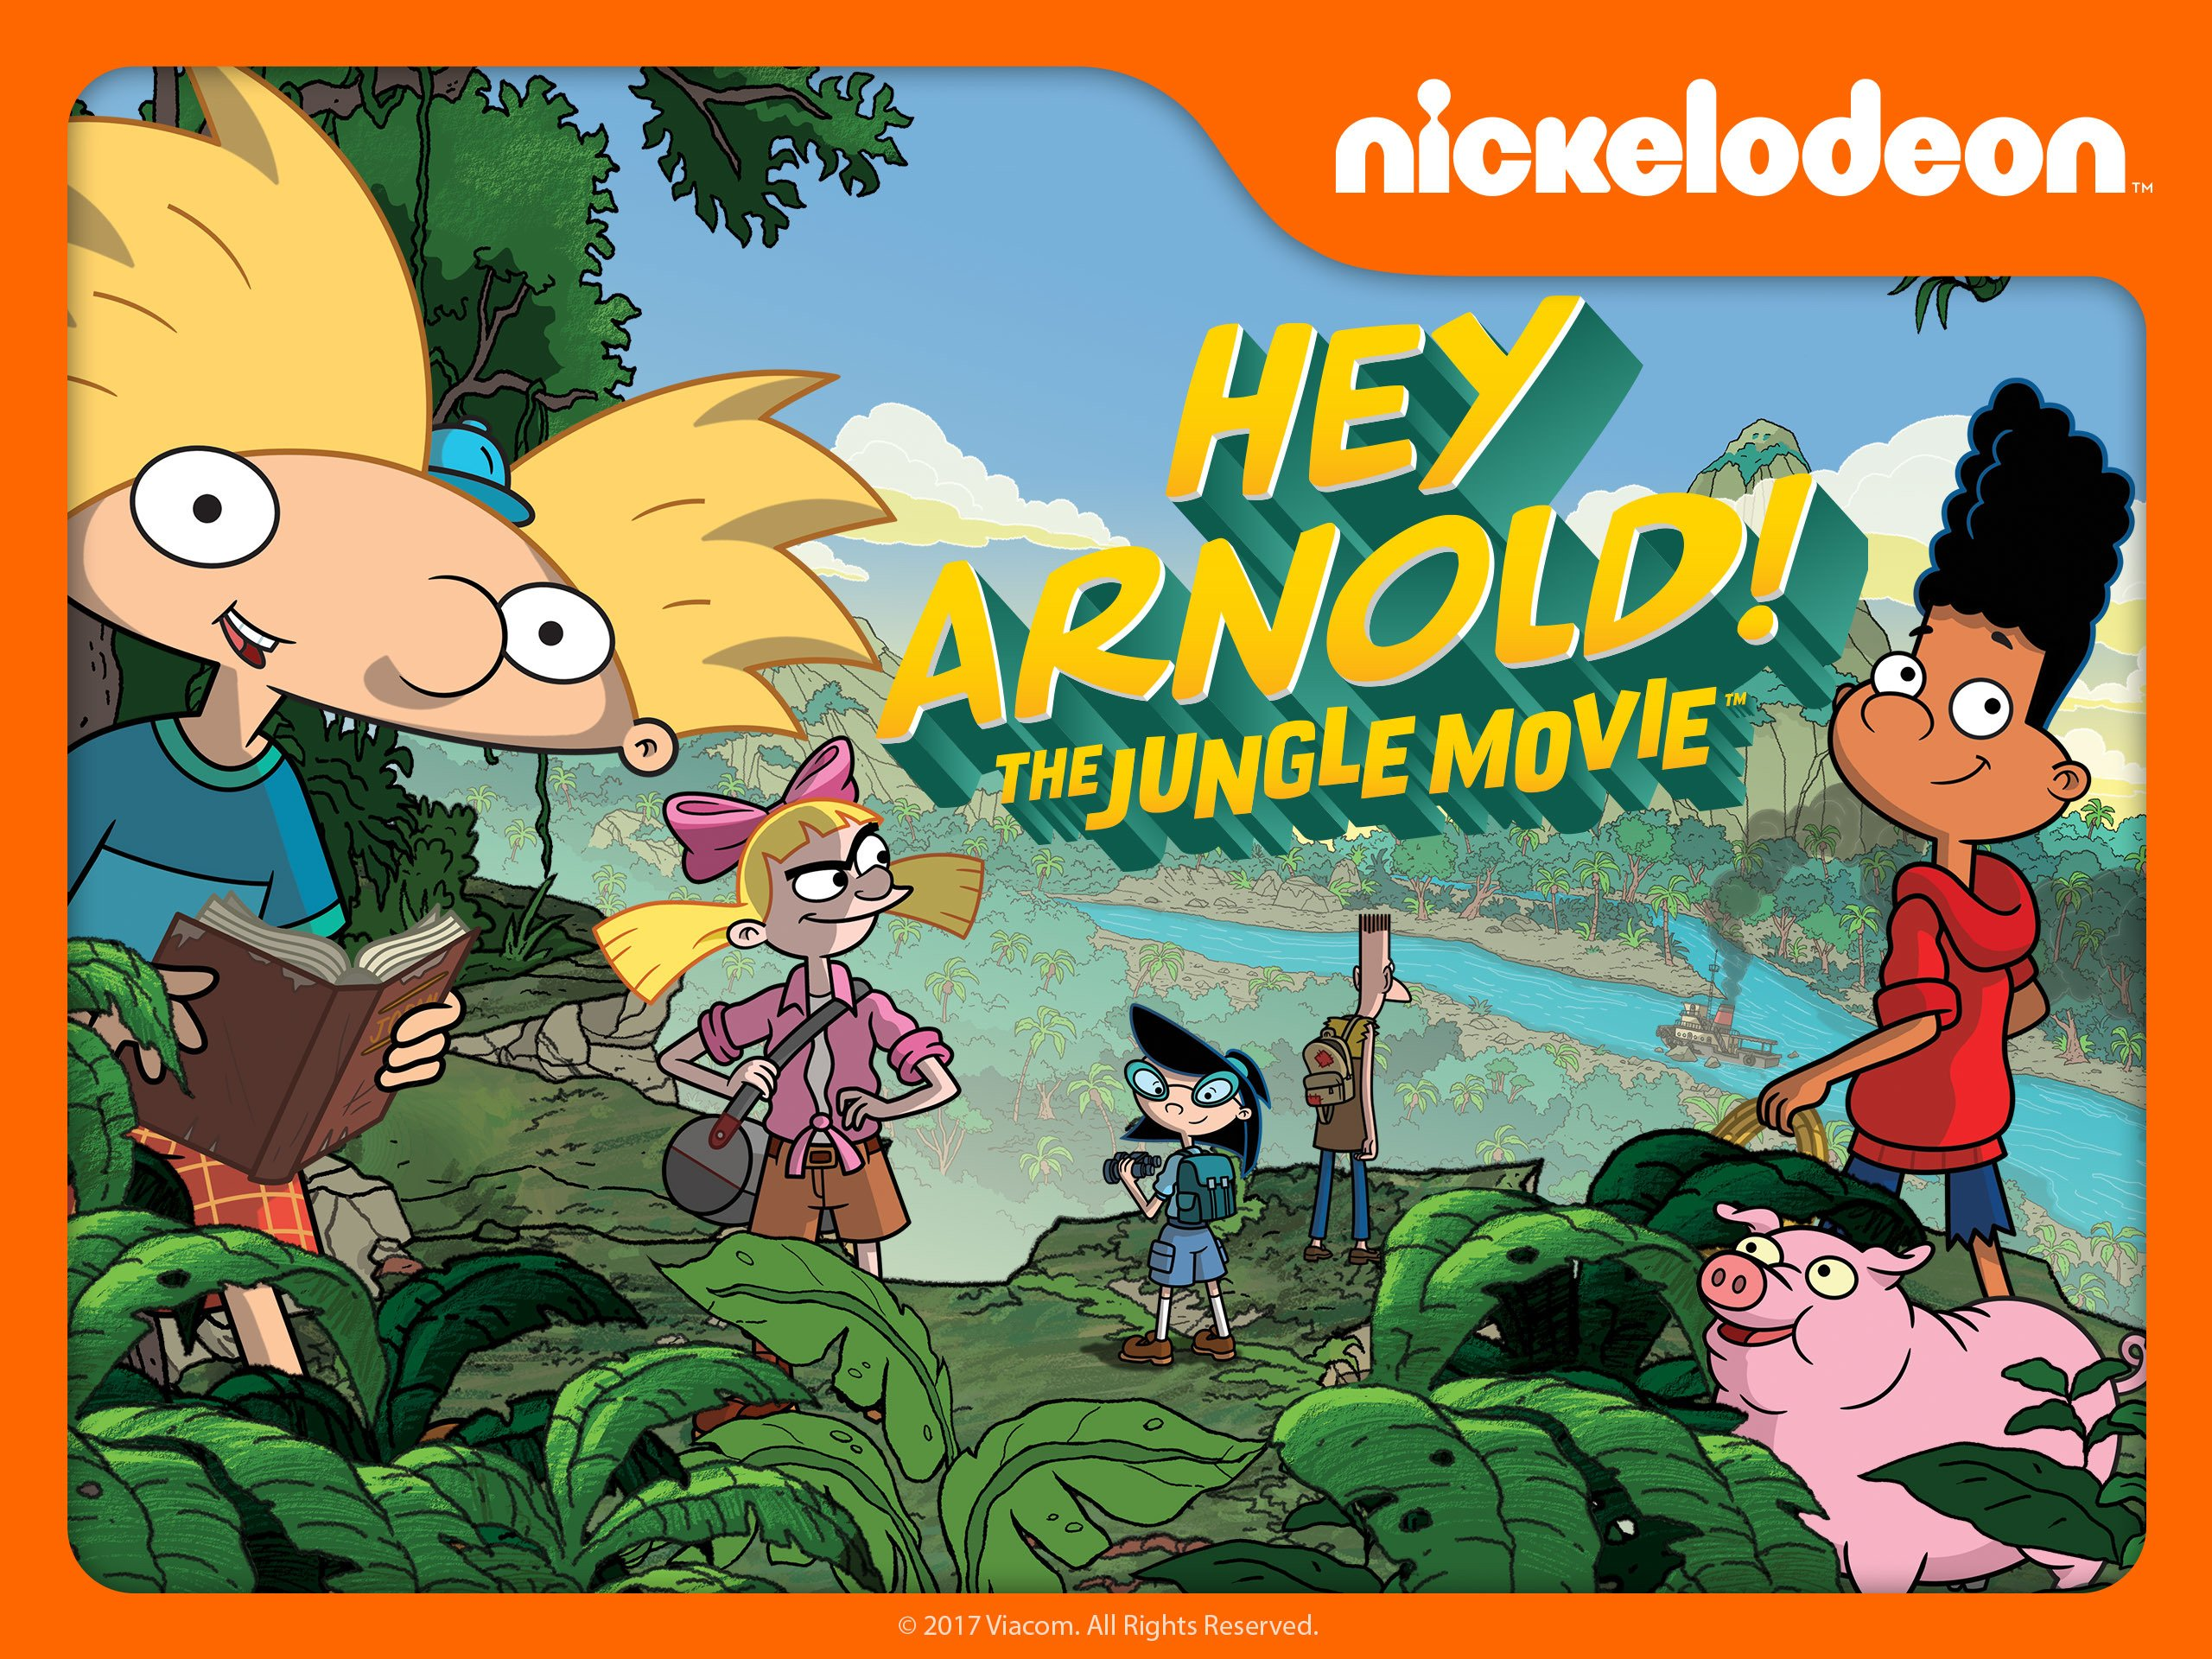 hey arnold the jungle movie full movie download